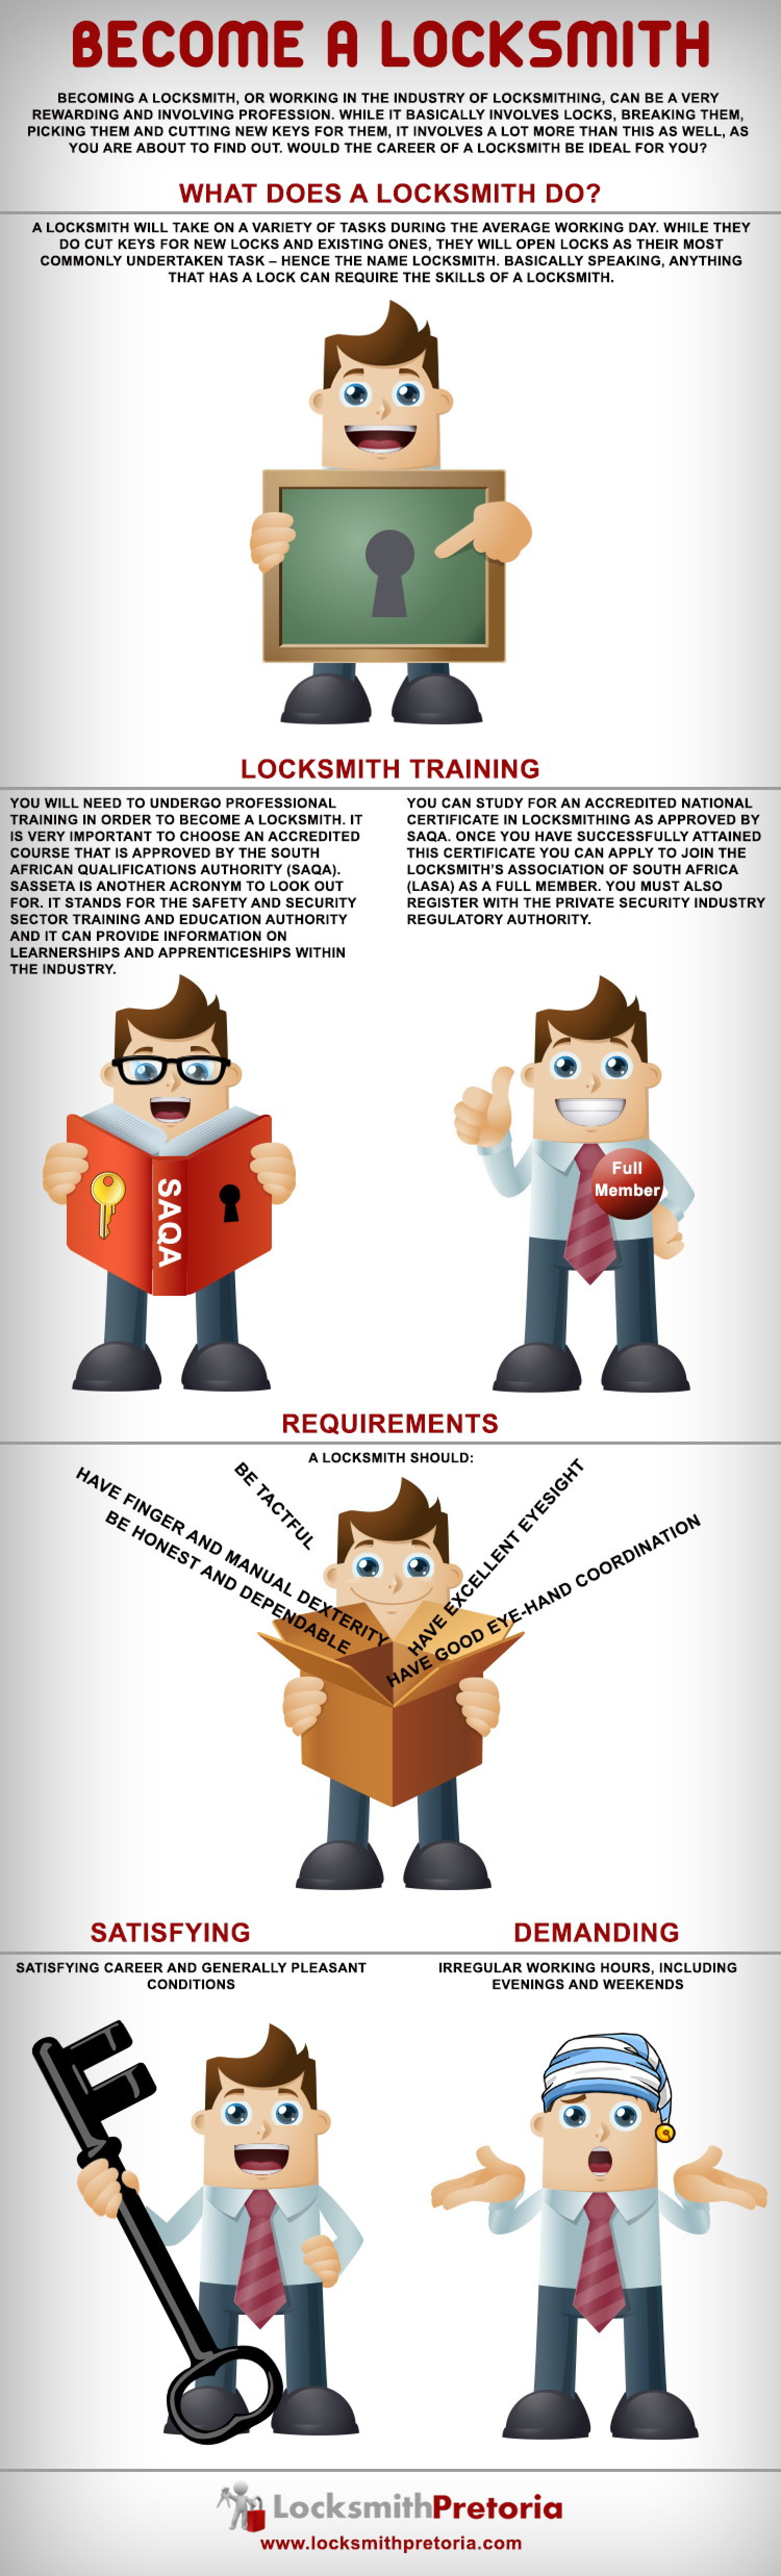 Information on how to become a Master Locksmith in South Africa Infographic